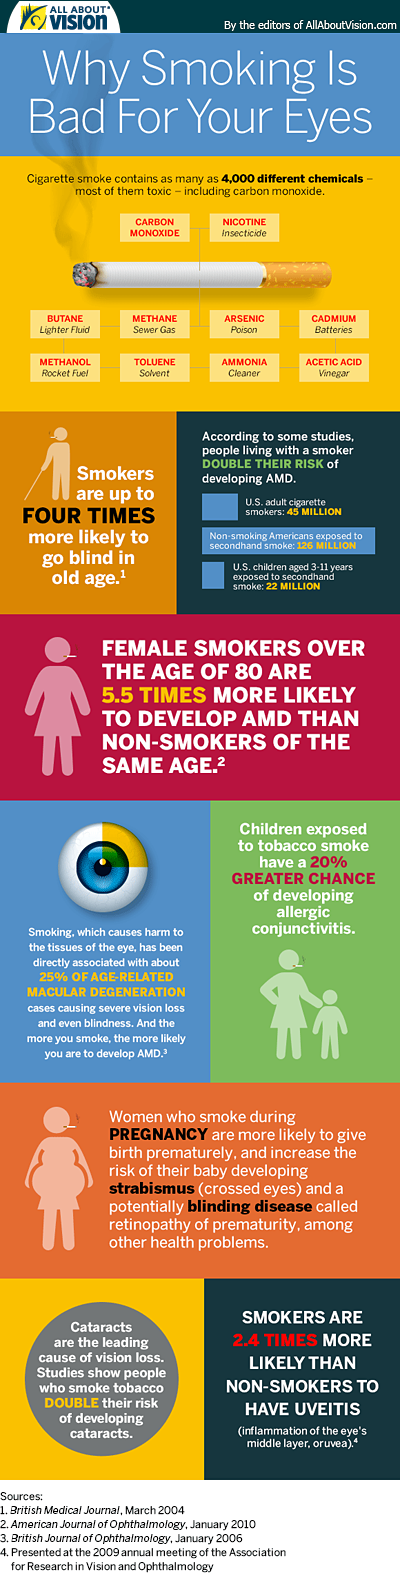 Infographic: Why Smoking Is Bad for Your Eyes